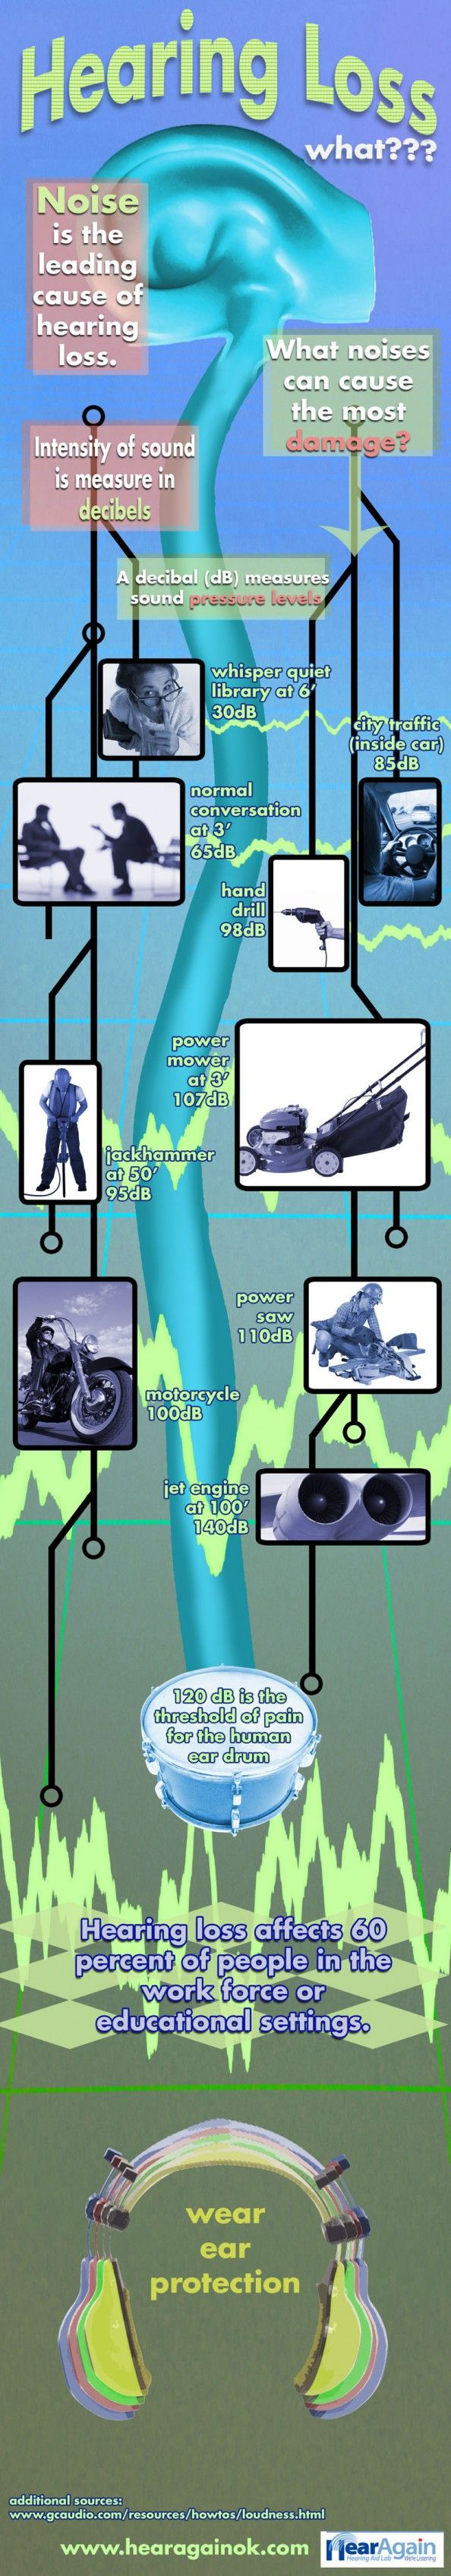 Hearing Loss Due to Noise Decibel Levels Infographic Infographic